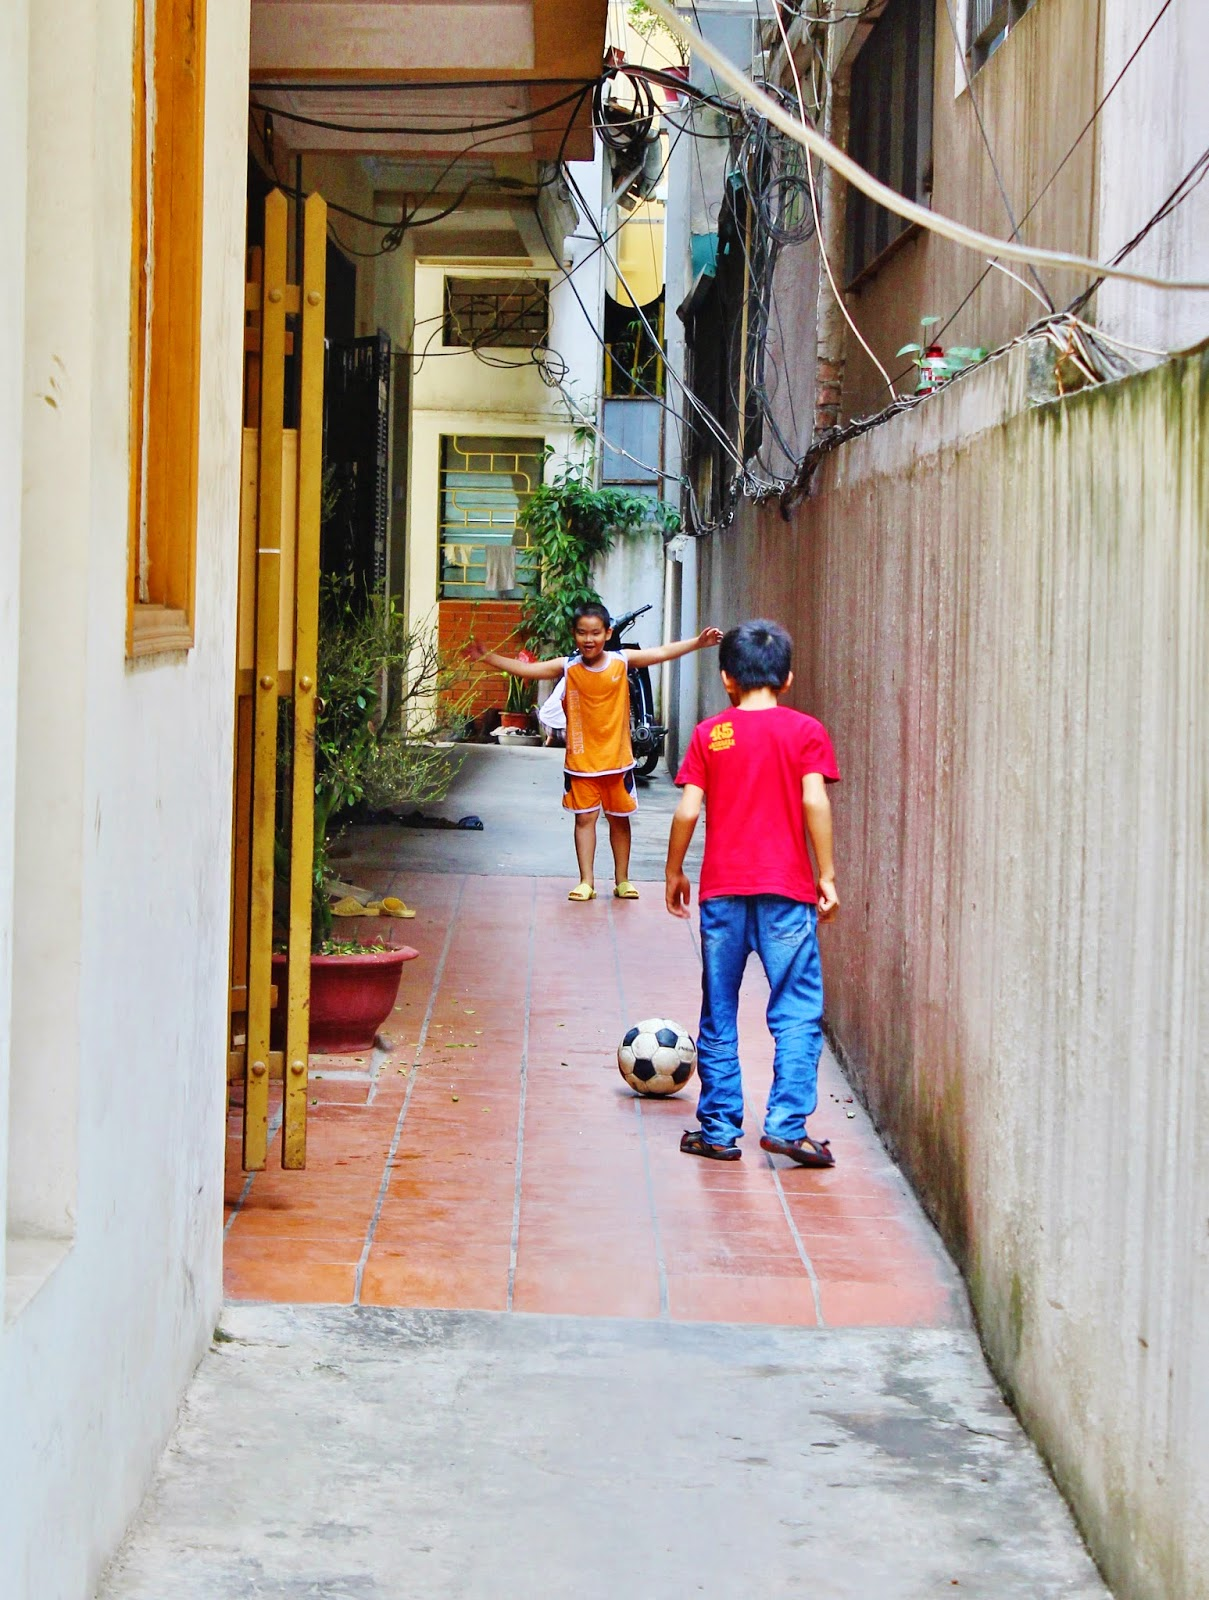 0dda9022fdd Random Vietnamese kids kicking around a soccer ball on the backstreets of  Hanoi.